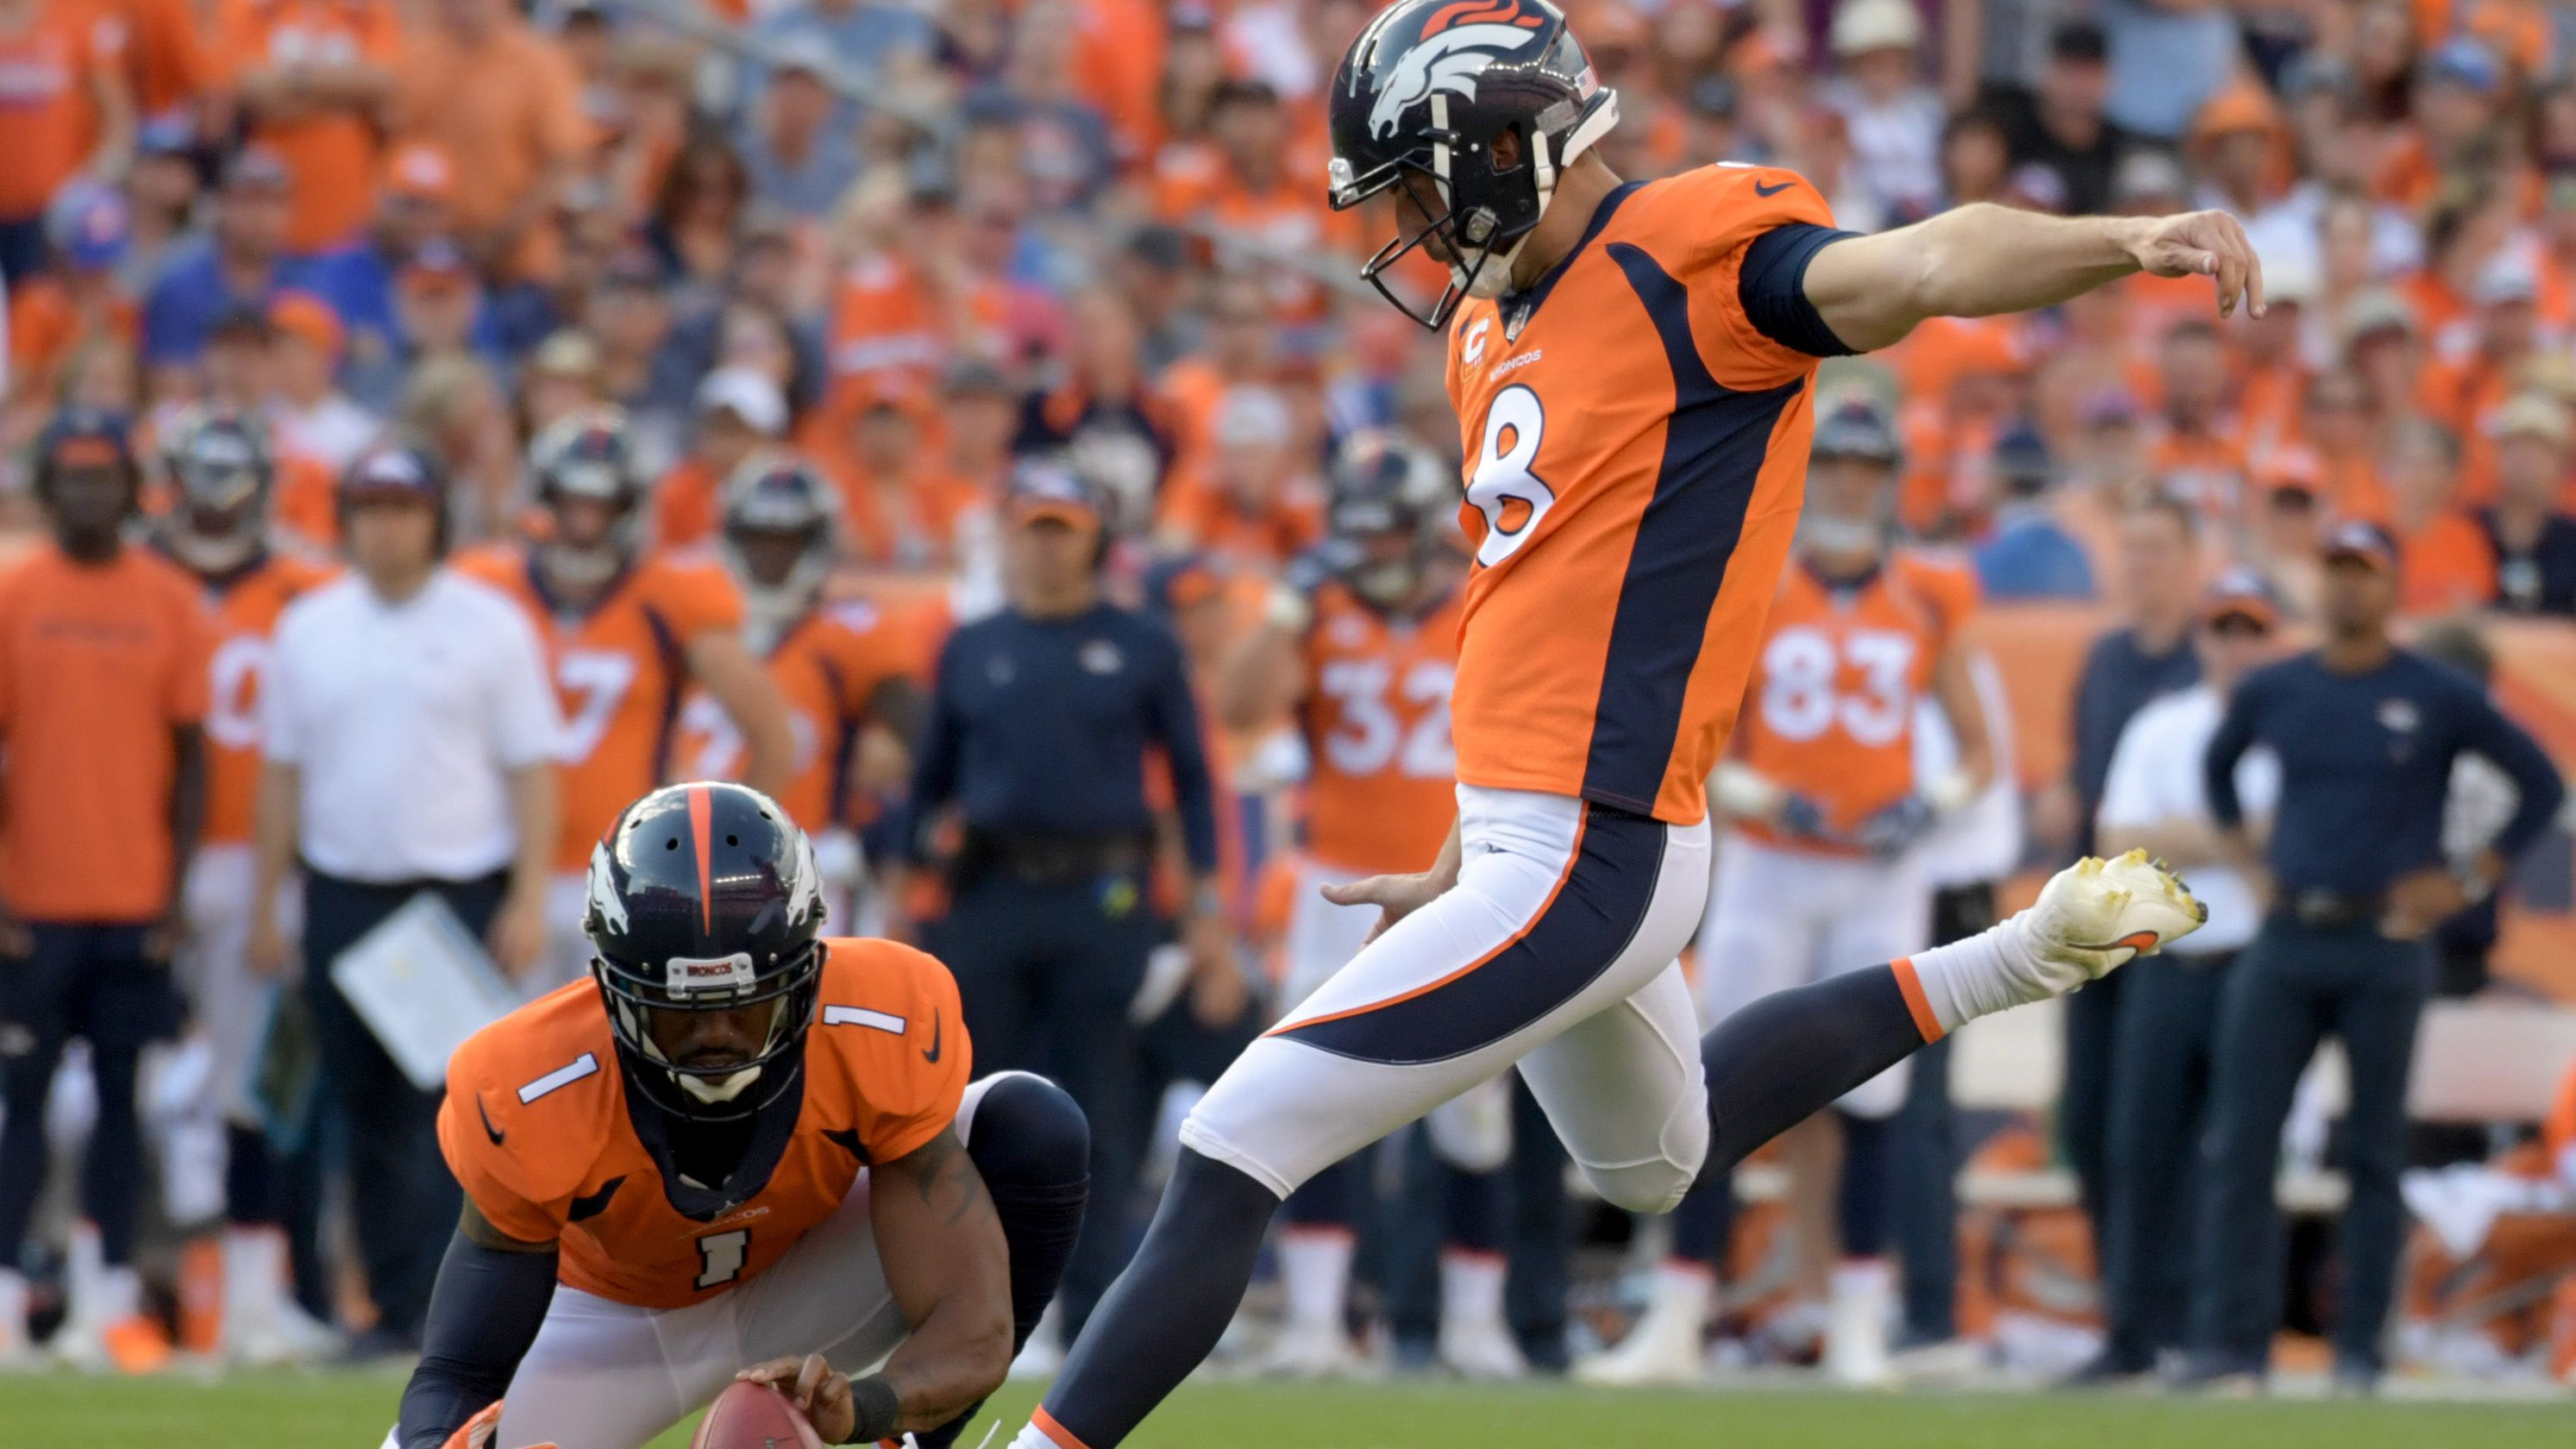 FanDuel Reverses Decision, Will Pay Bettors Who Took Advantage of Erroneous Odds on Broncos